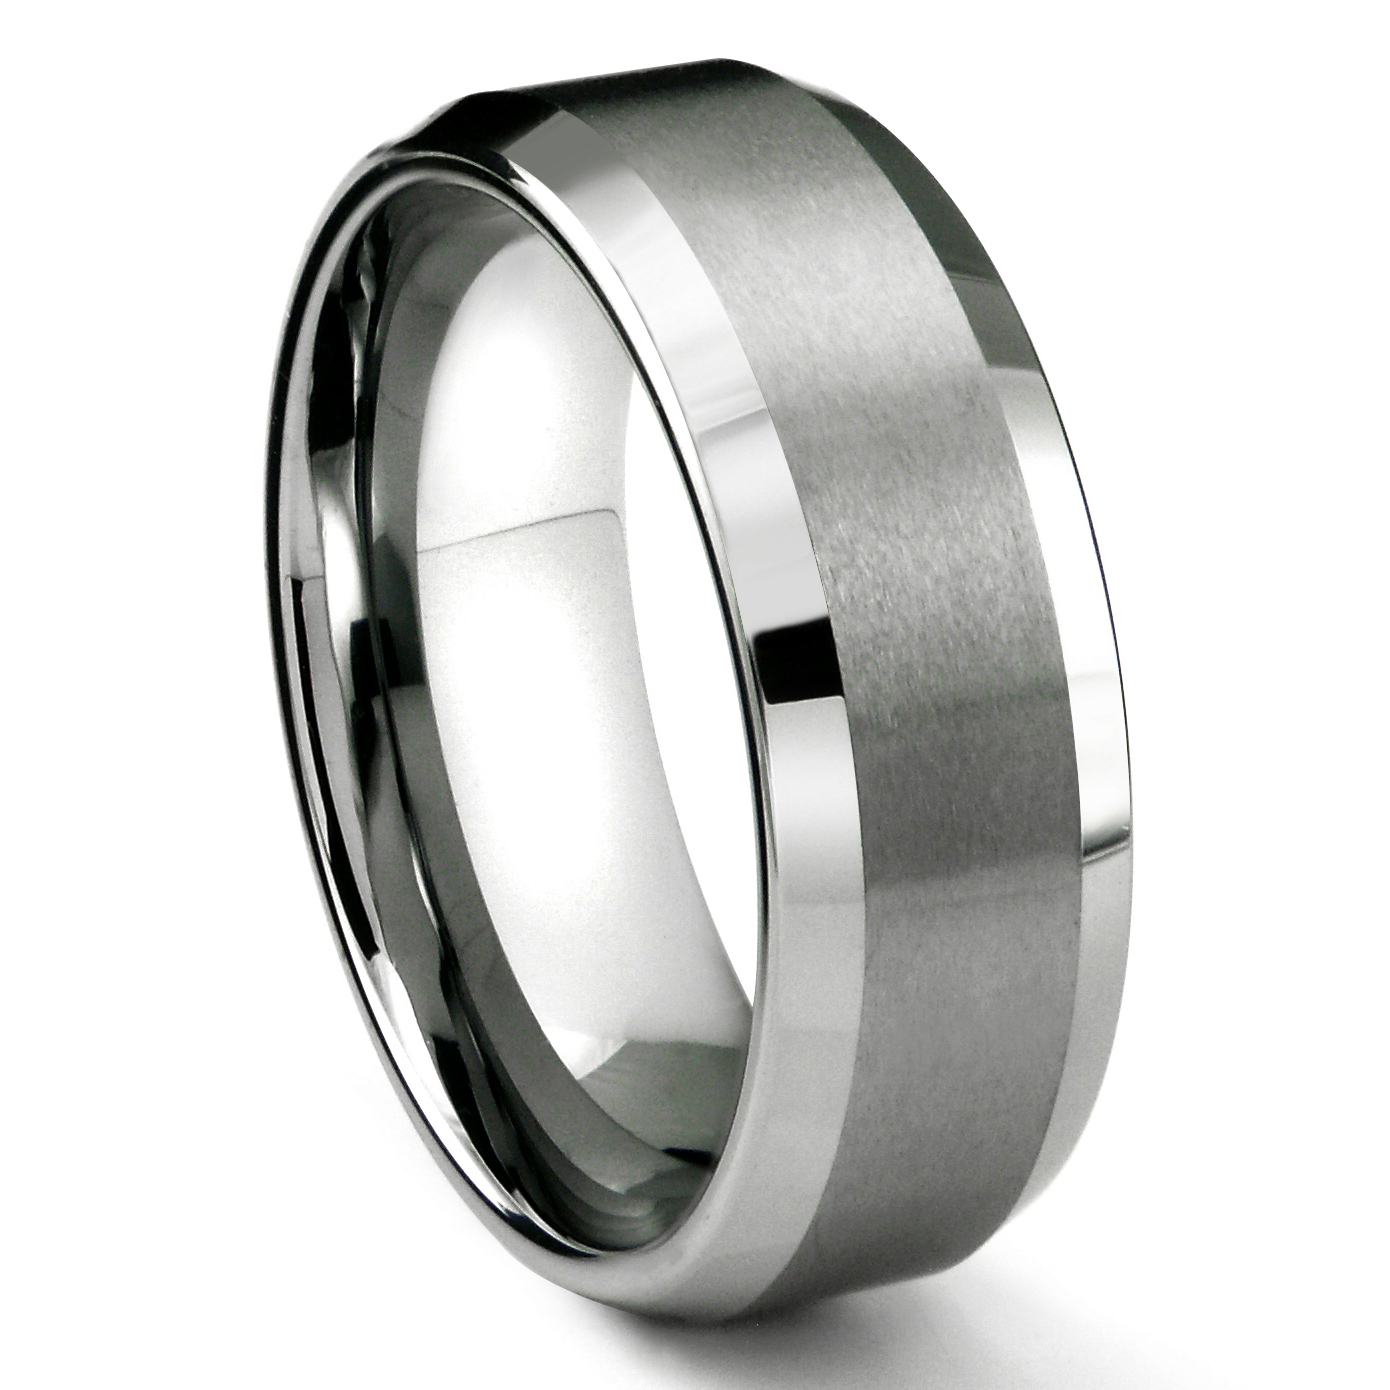 fit for band wedding comfort men the bevel man dallas polished tungsten high s ring design bands casual silver cowboys king collections